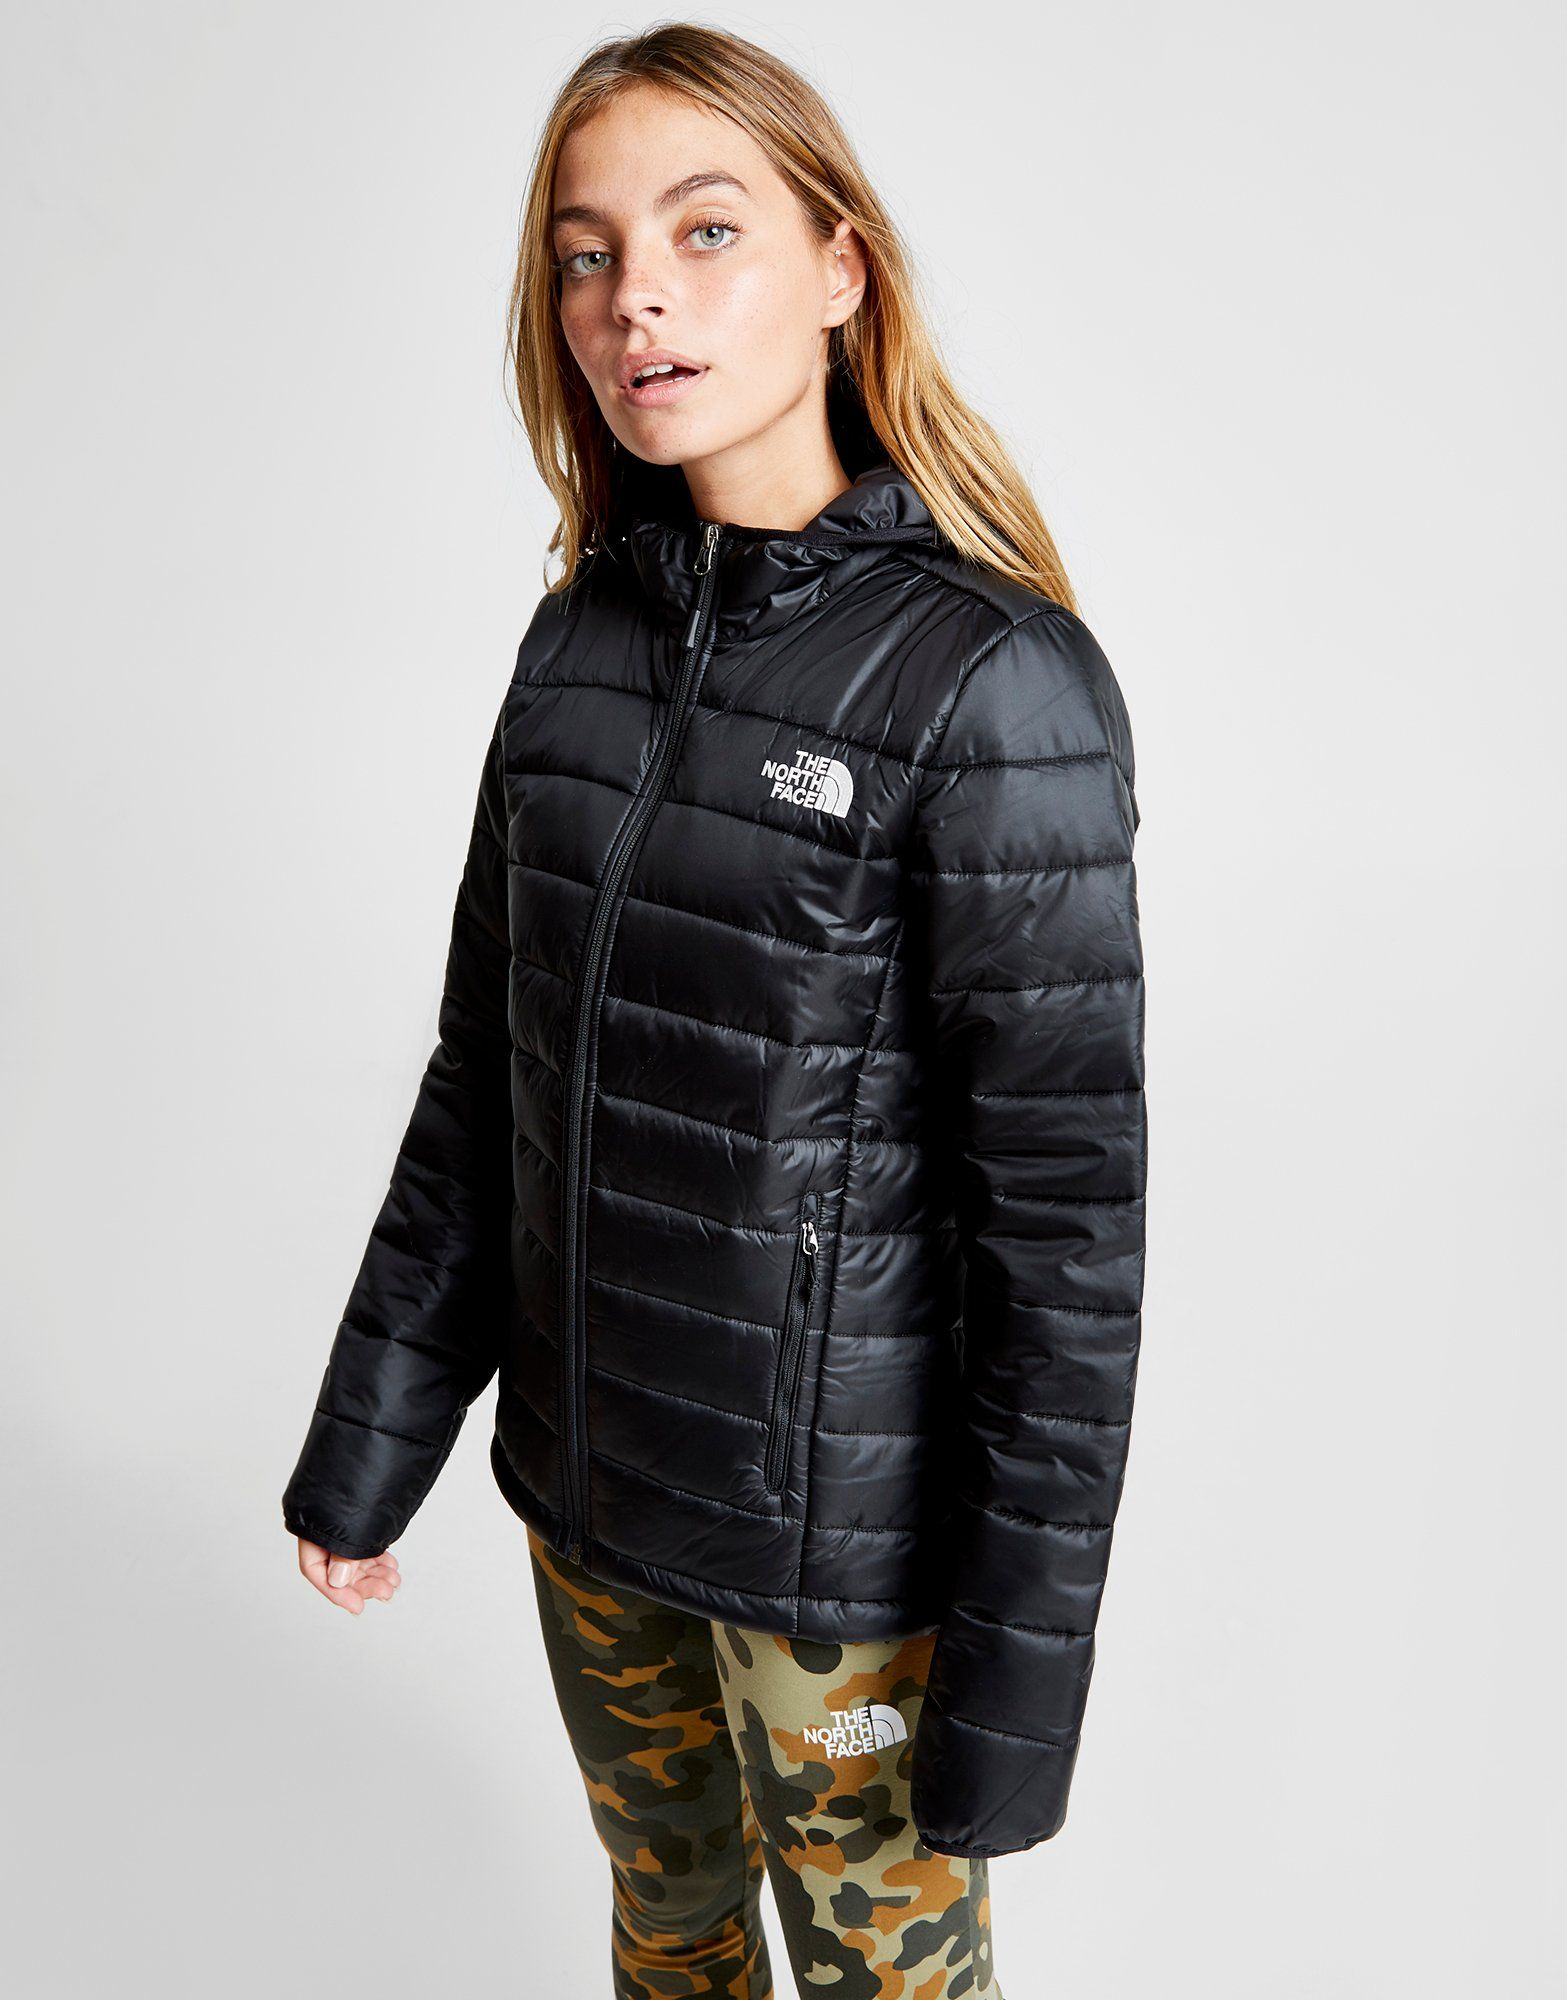 Women's Coats & Women's Jackets | JD Sports